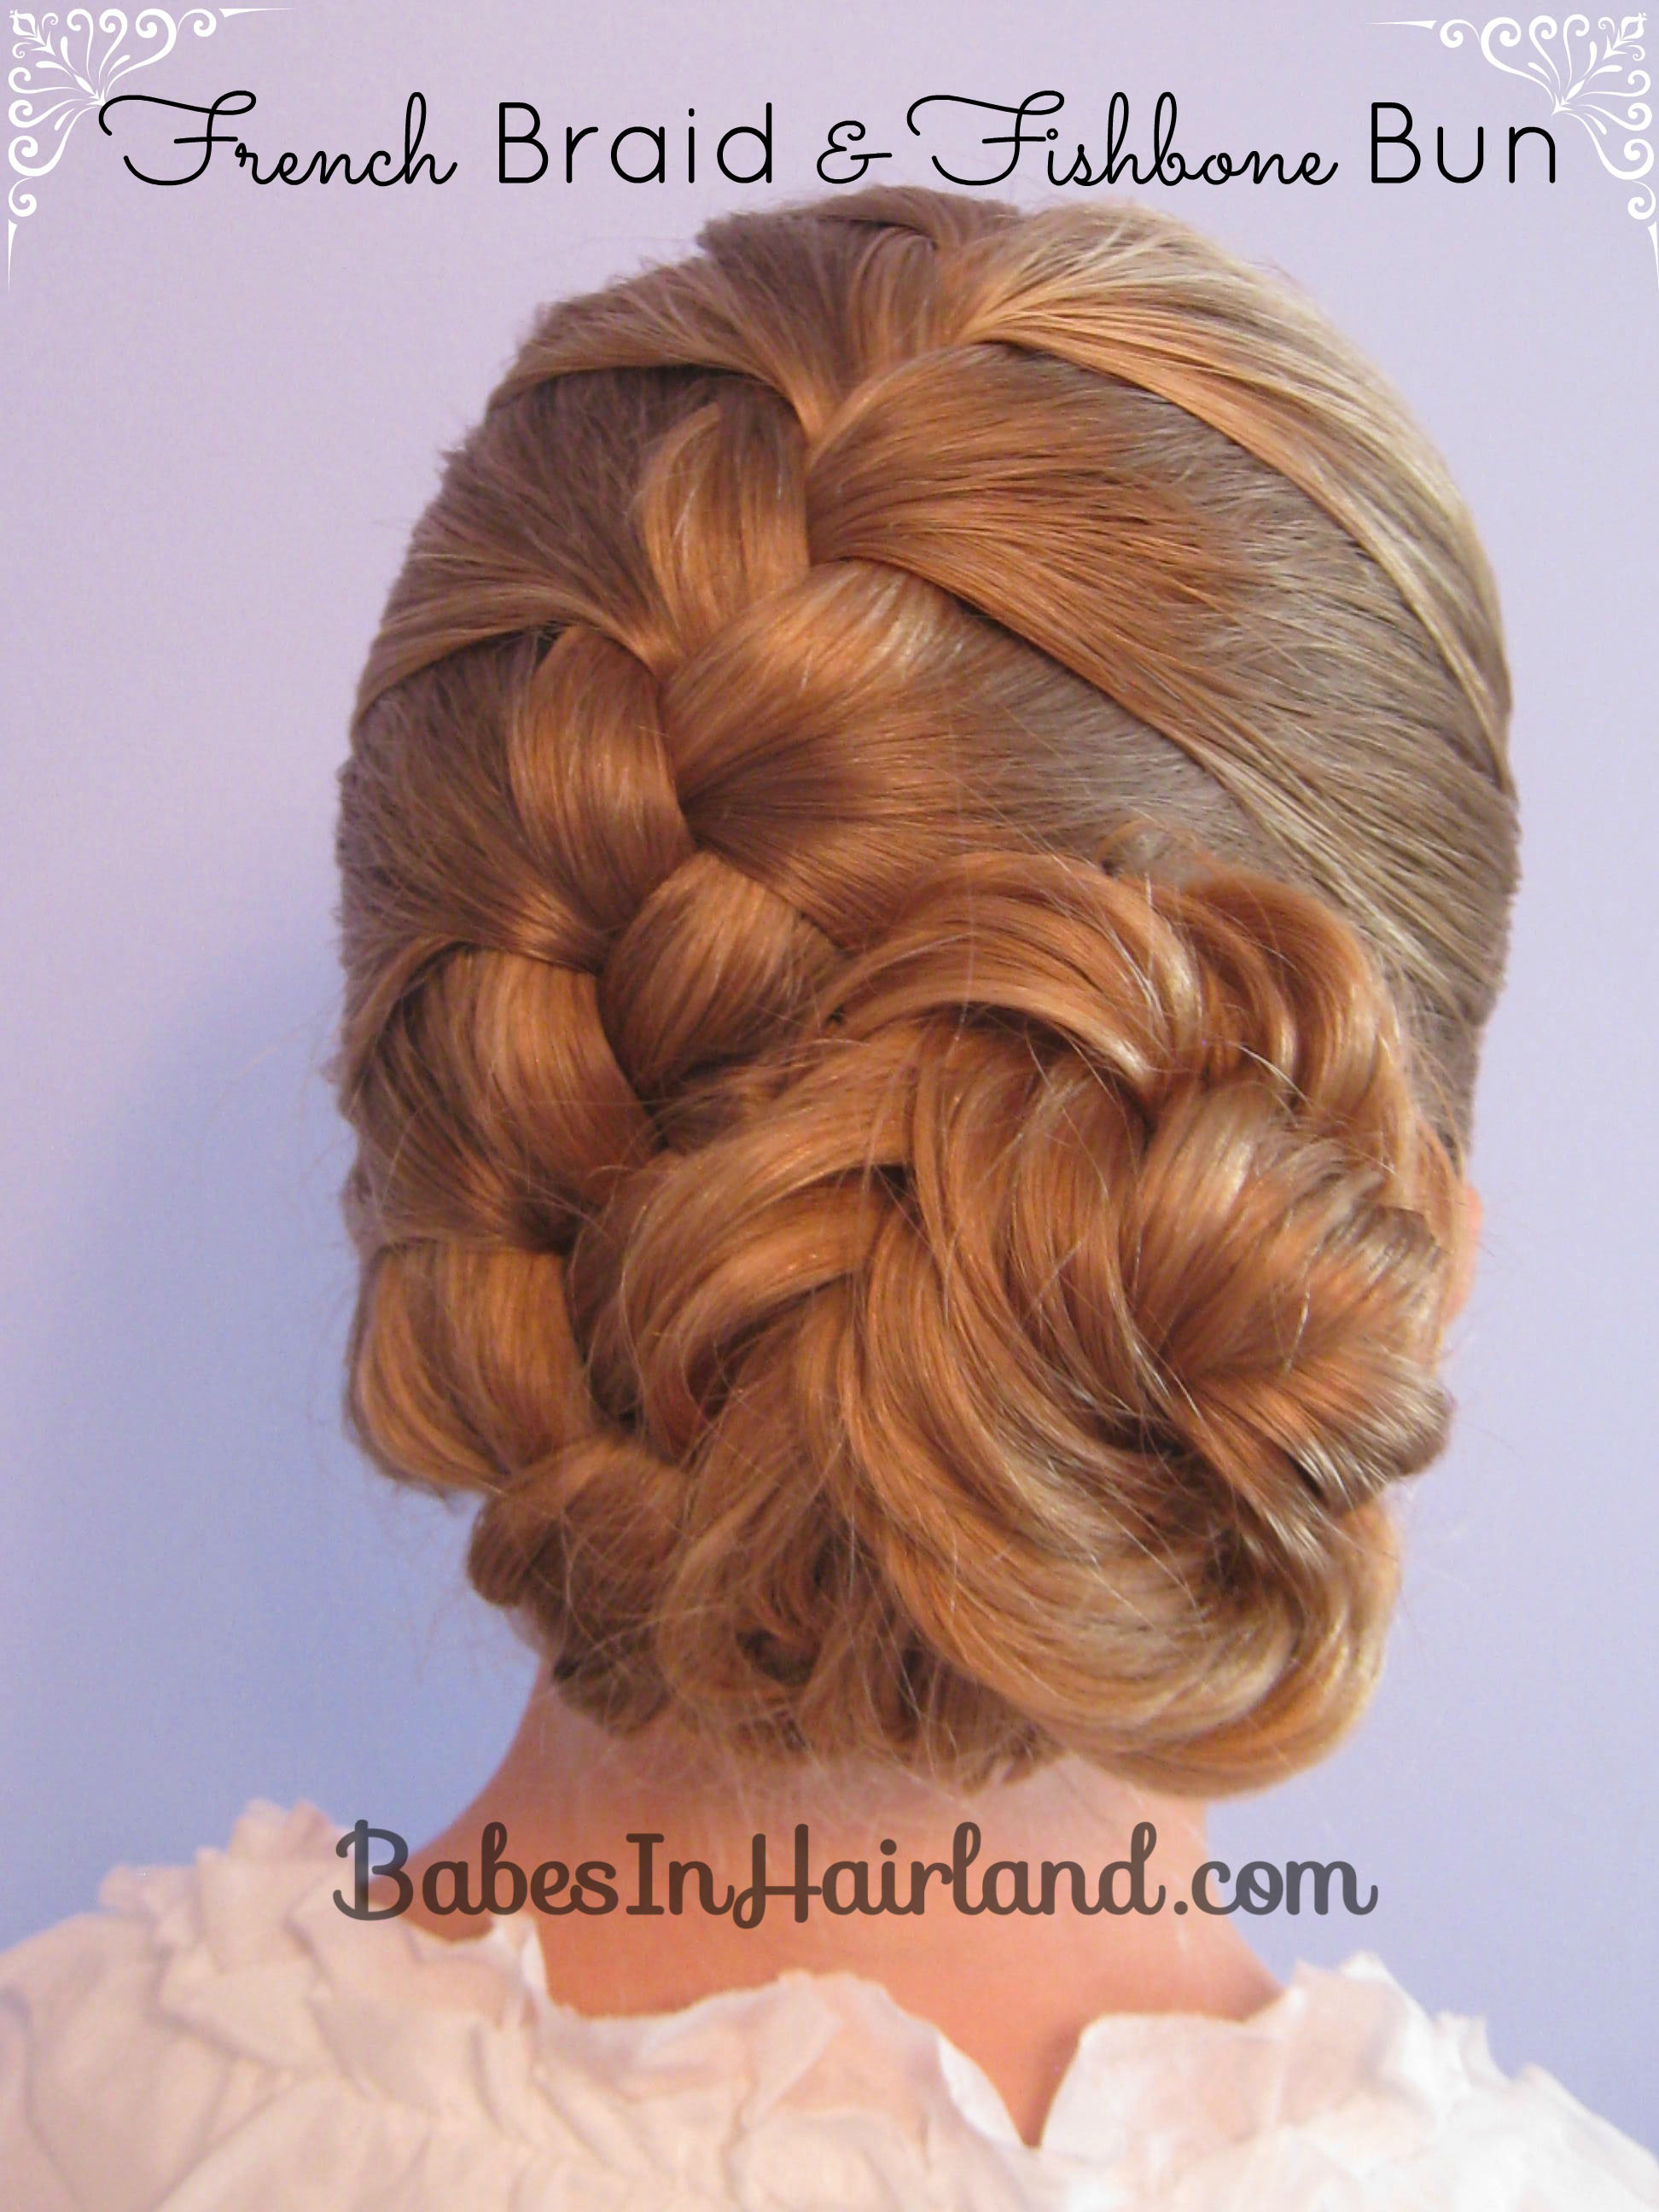 French Braid and Fishbone Bun from BabesInHairland.com (1)